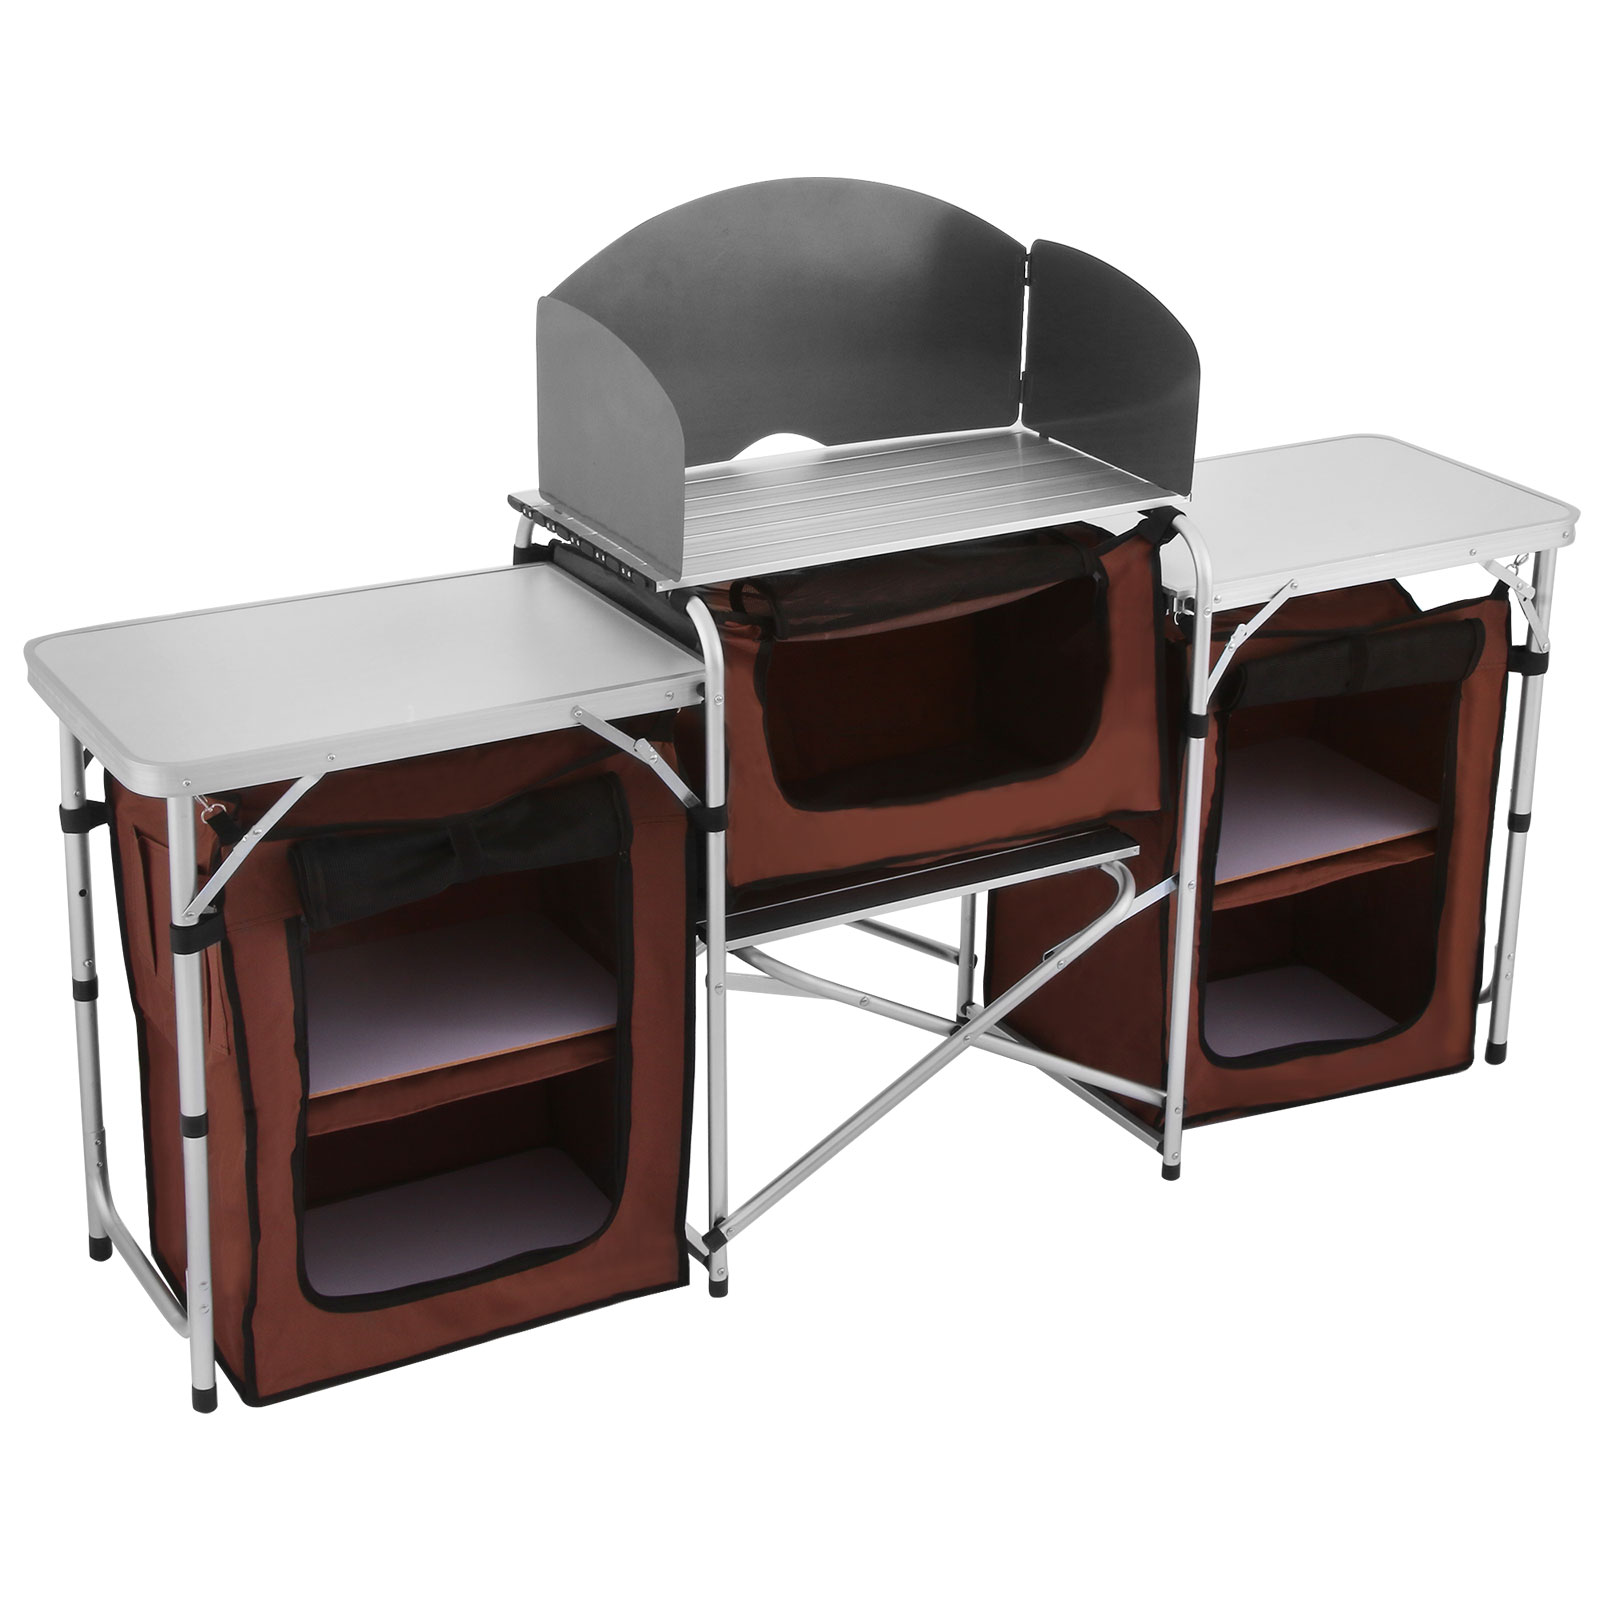 Camping Kitchen Table Picnic Cabinet Table Portable